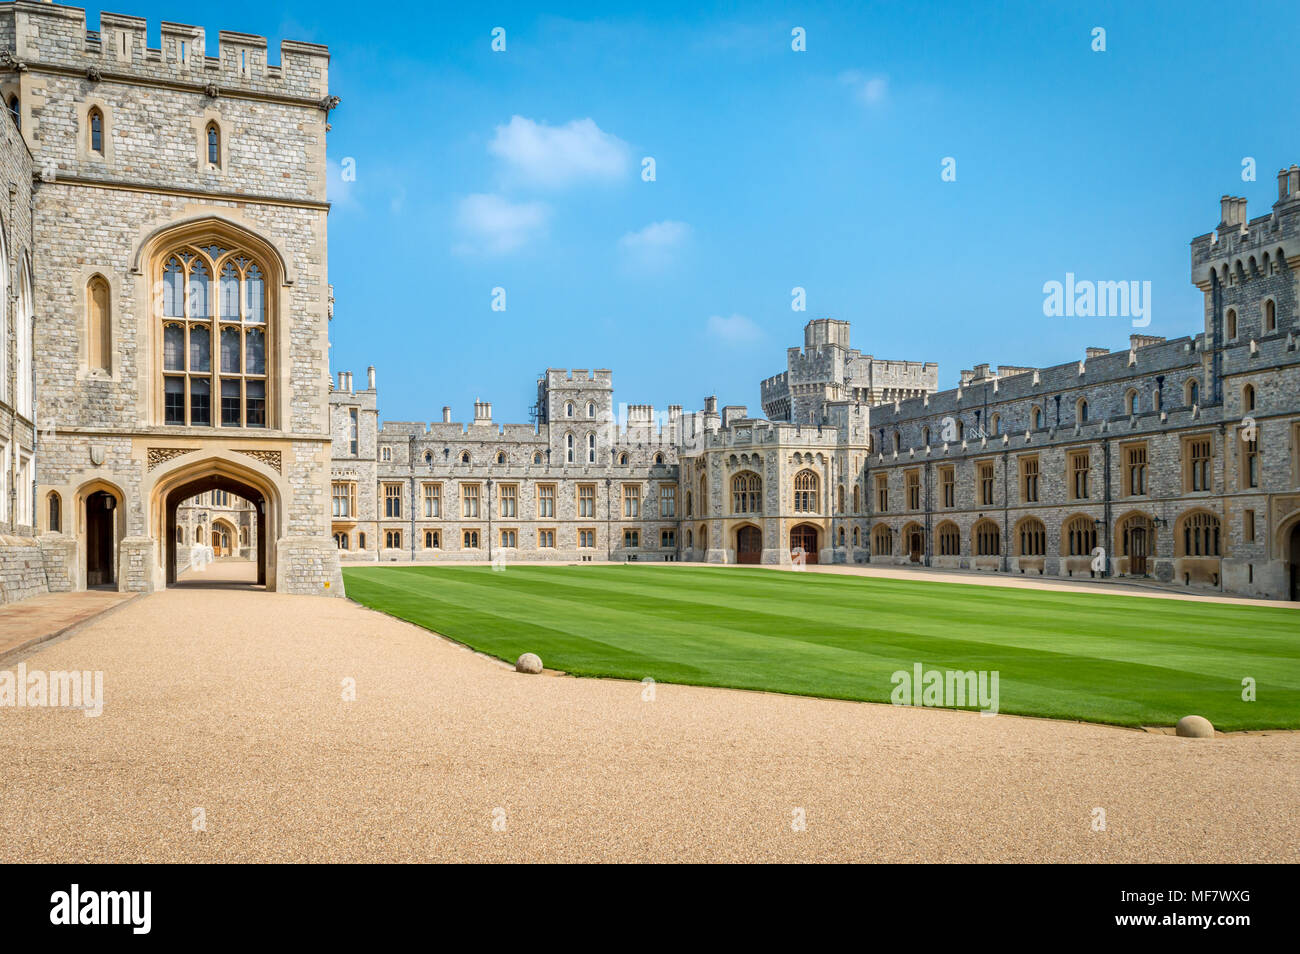 Windsor, United Kingdom - MAY 05, 2016 : View of Upper Ward (Quadrangle) in Medieval Windsor Castle. Windsor Castle is a royal residence at Windsor in - Stock Image